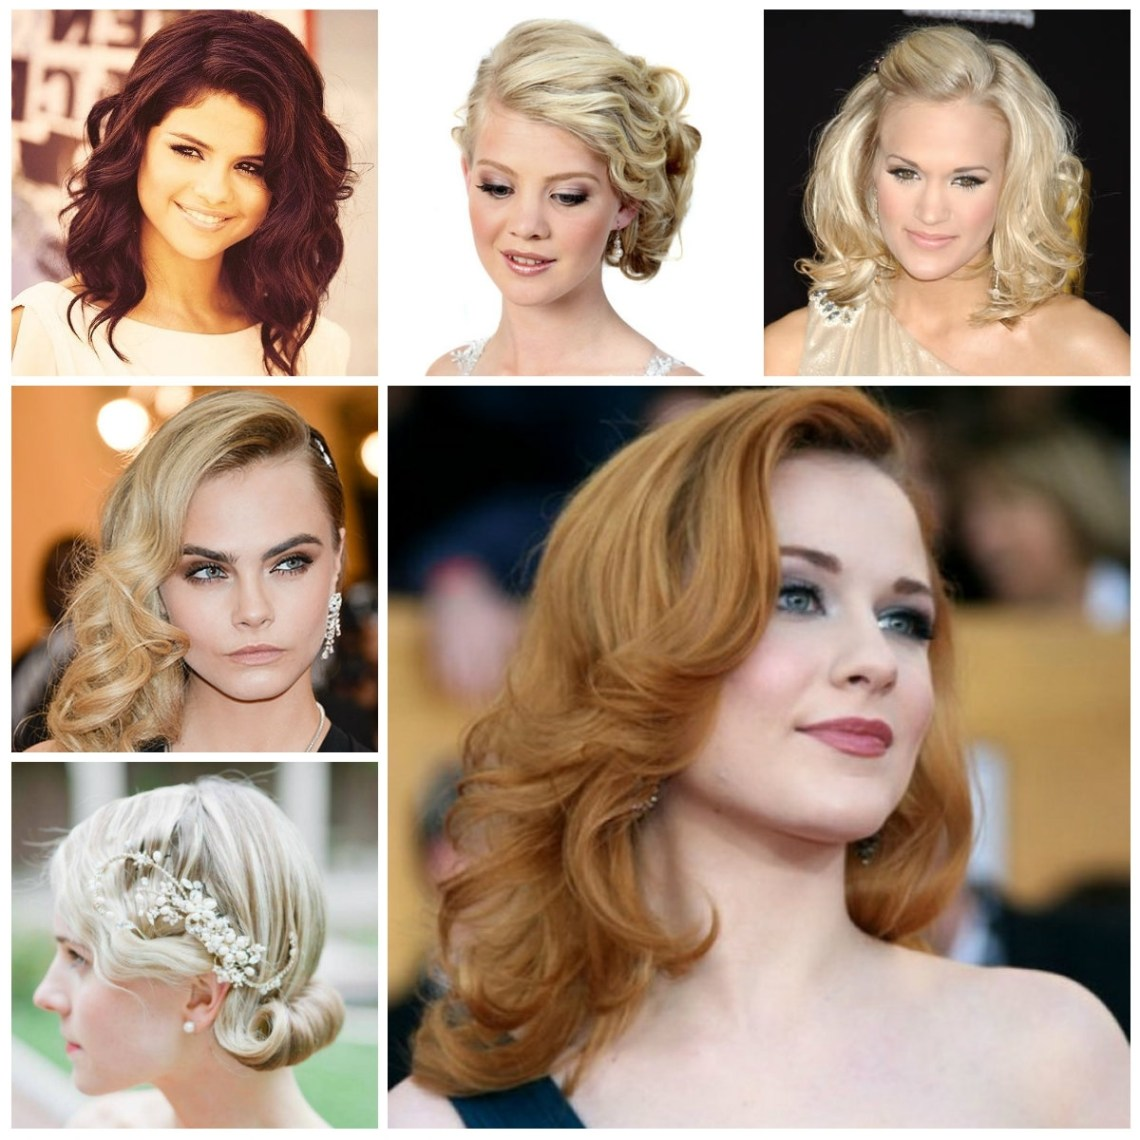 Prom Medium Hairstyles 2016 | 2021 Haircuts, Hairstyles And Prom Hairstyles For Medium Hair 2016